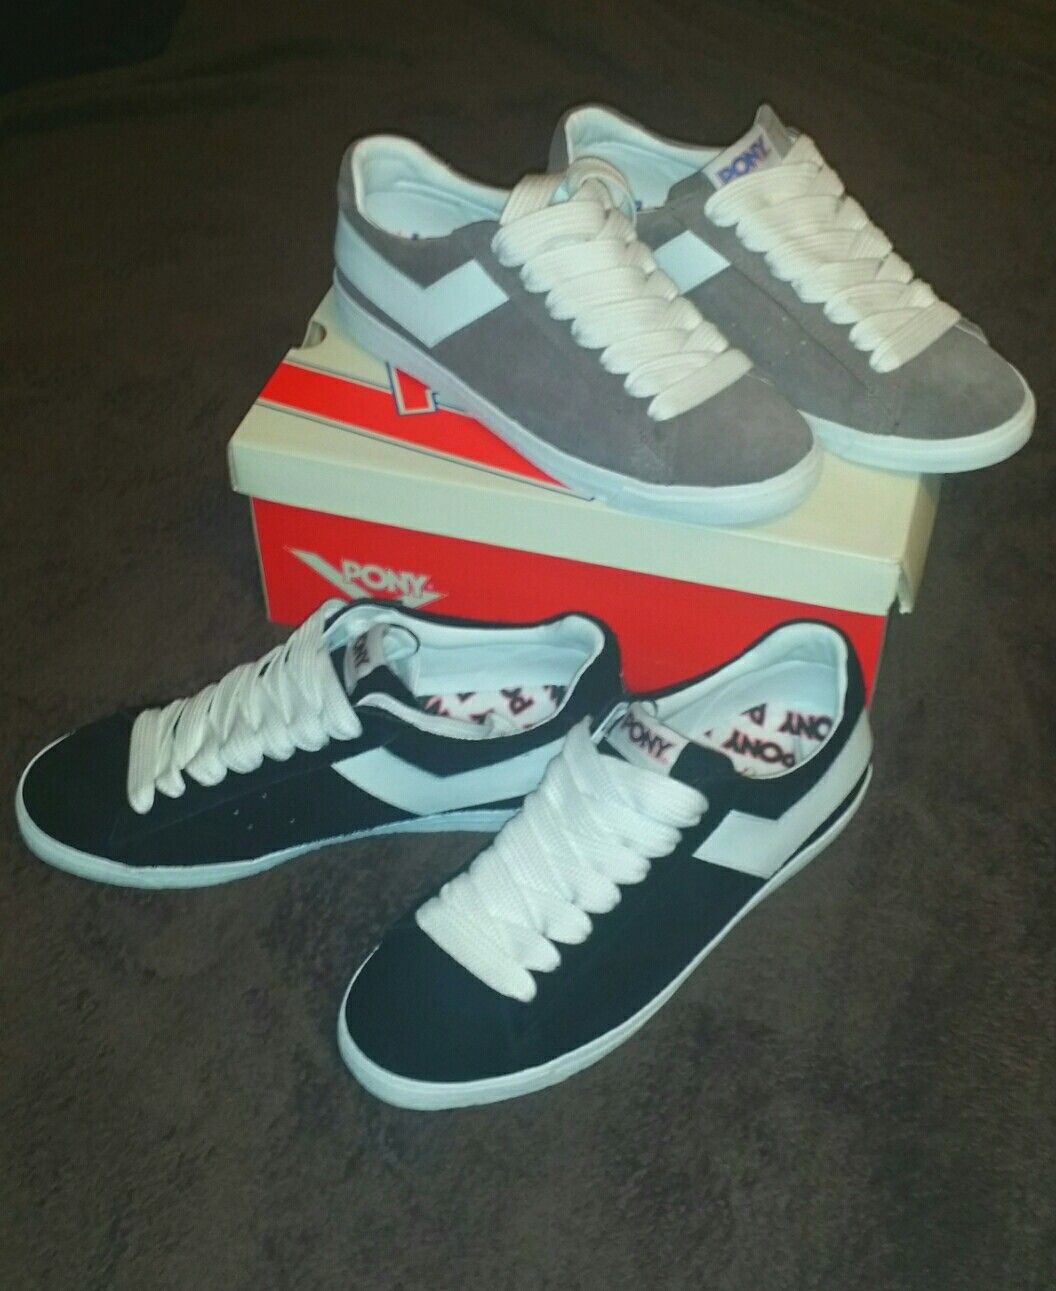 buy online c60d5 17d65 2 hot pair of PONY Sneakers to add to my classic collection.